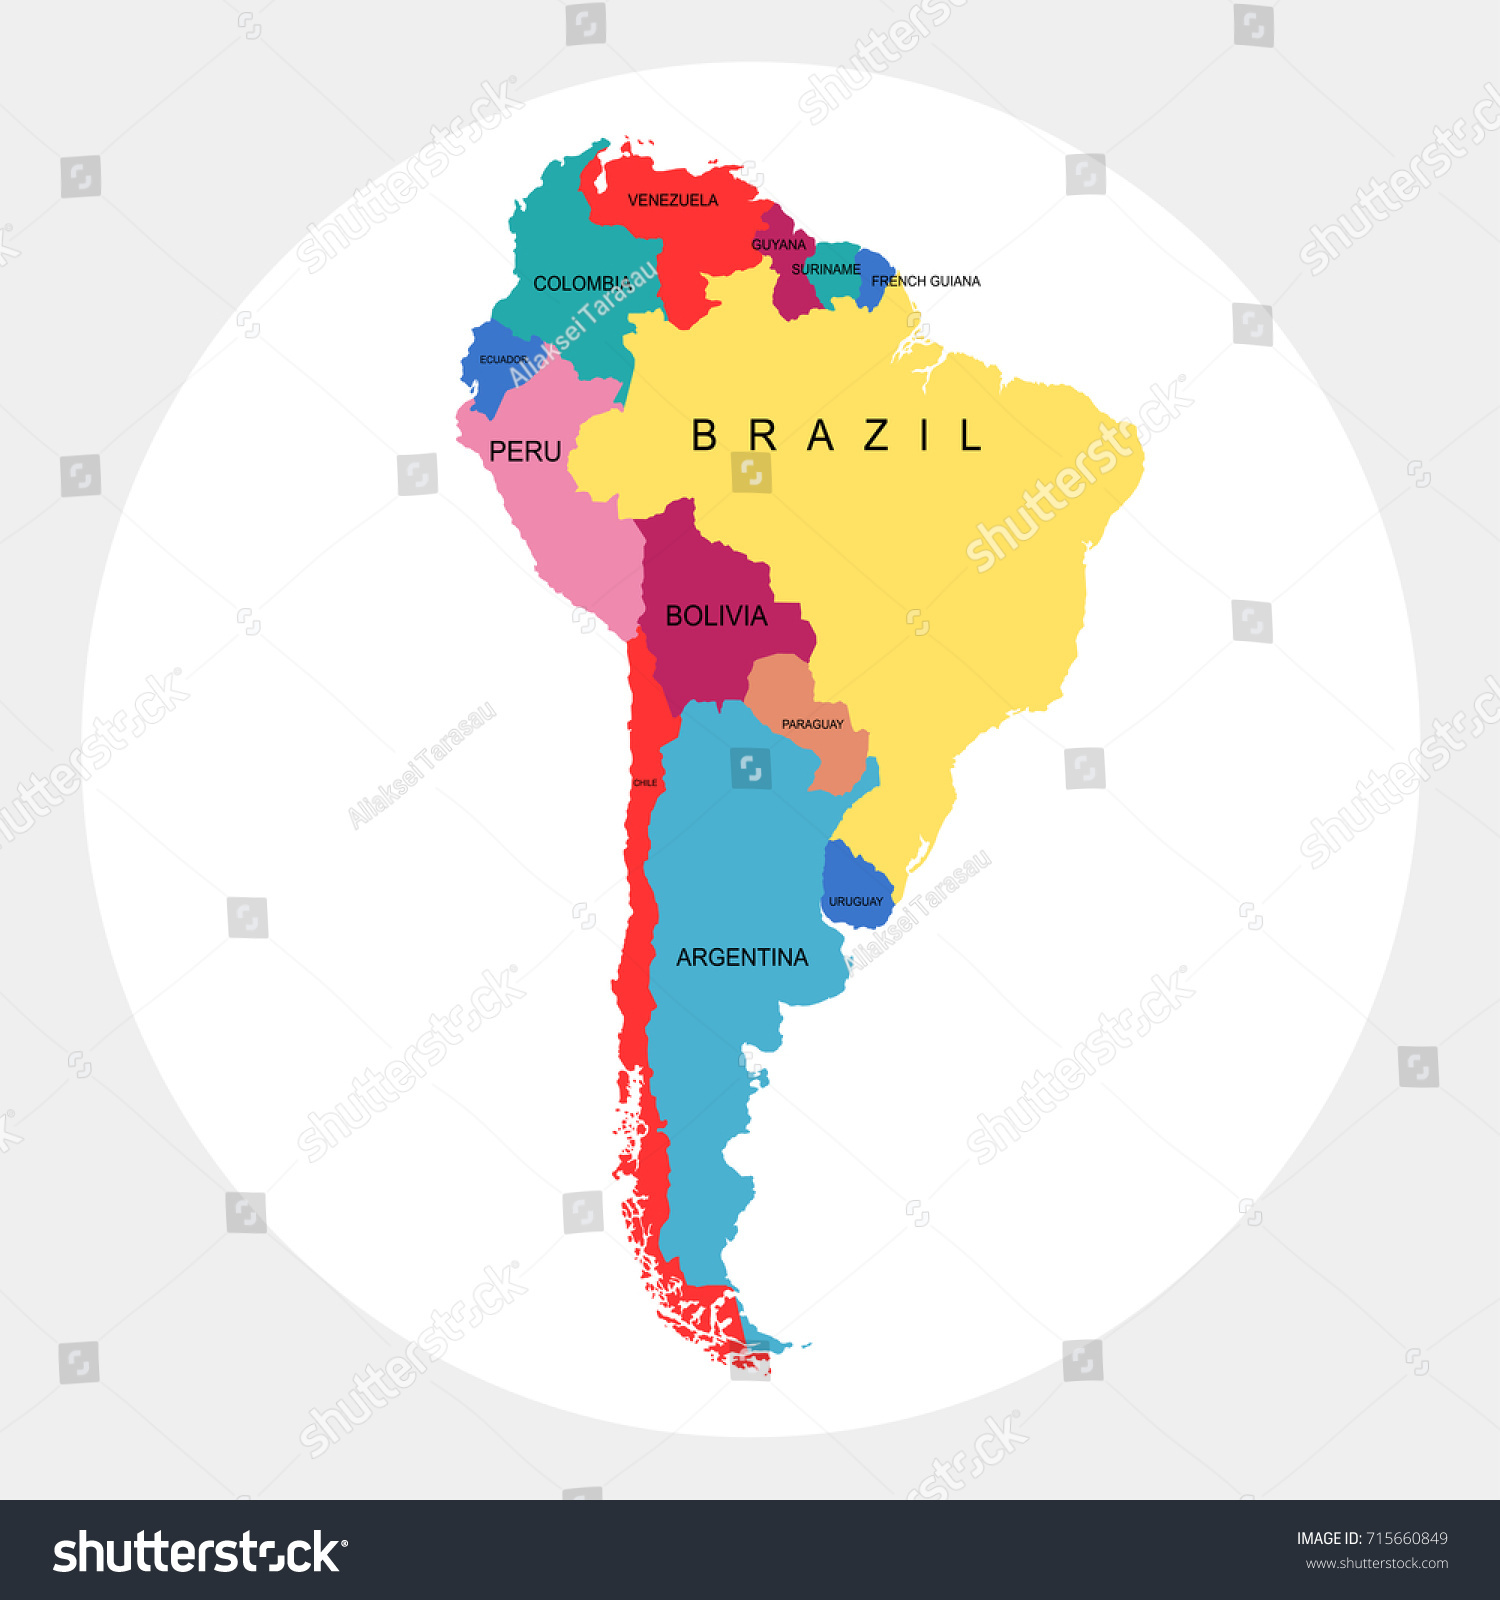 Map south america vectores en stock 715660849 shutterstock gumiabroncs Image collections